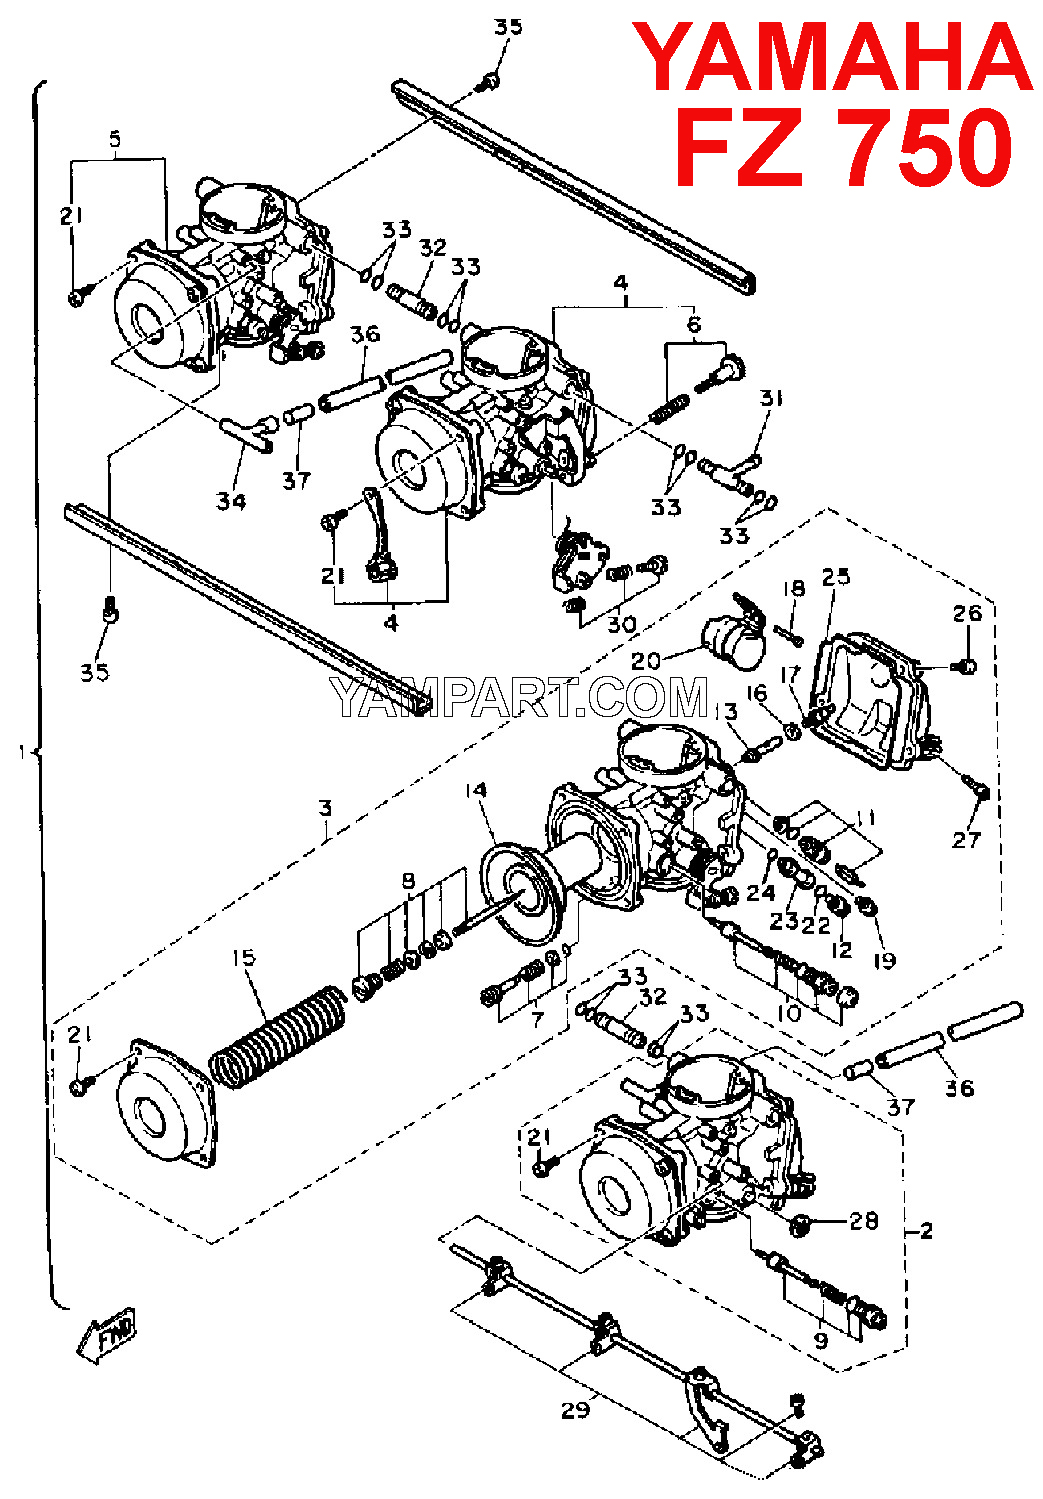 YAMAHA FZ750 CARB CARBURETTOR PARTS DIAGRAM YAMPART.COM